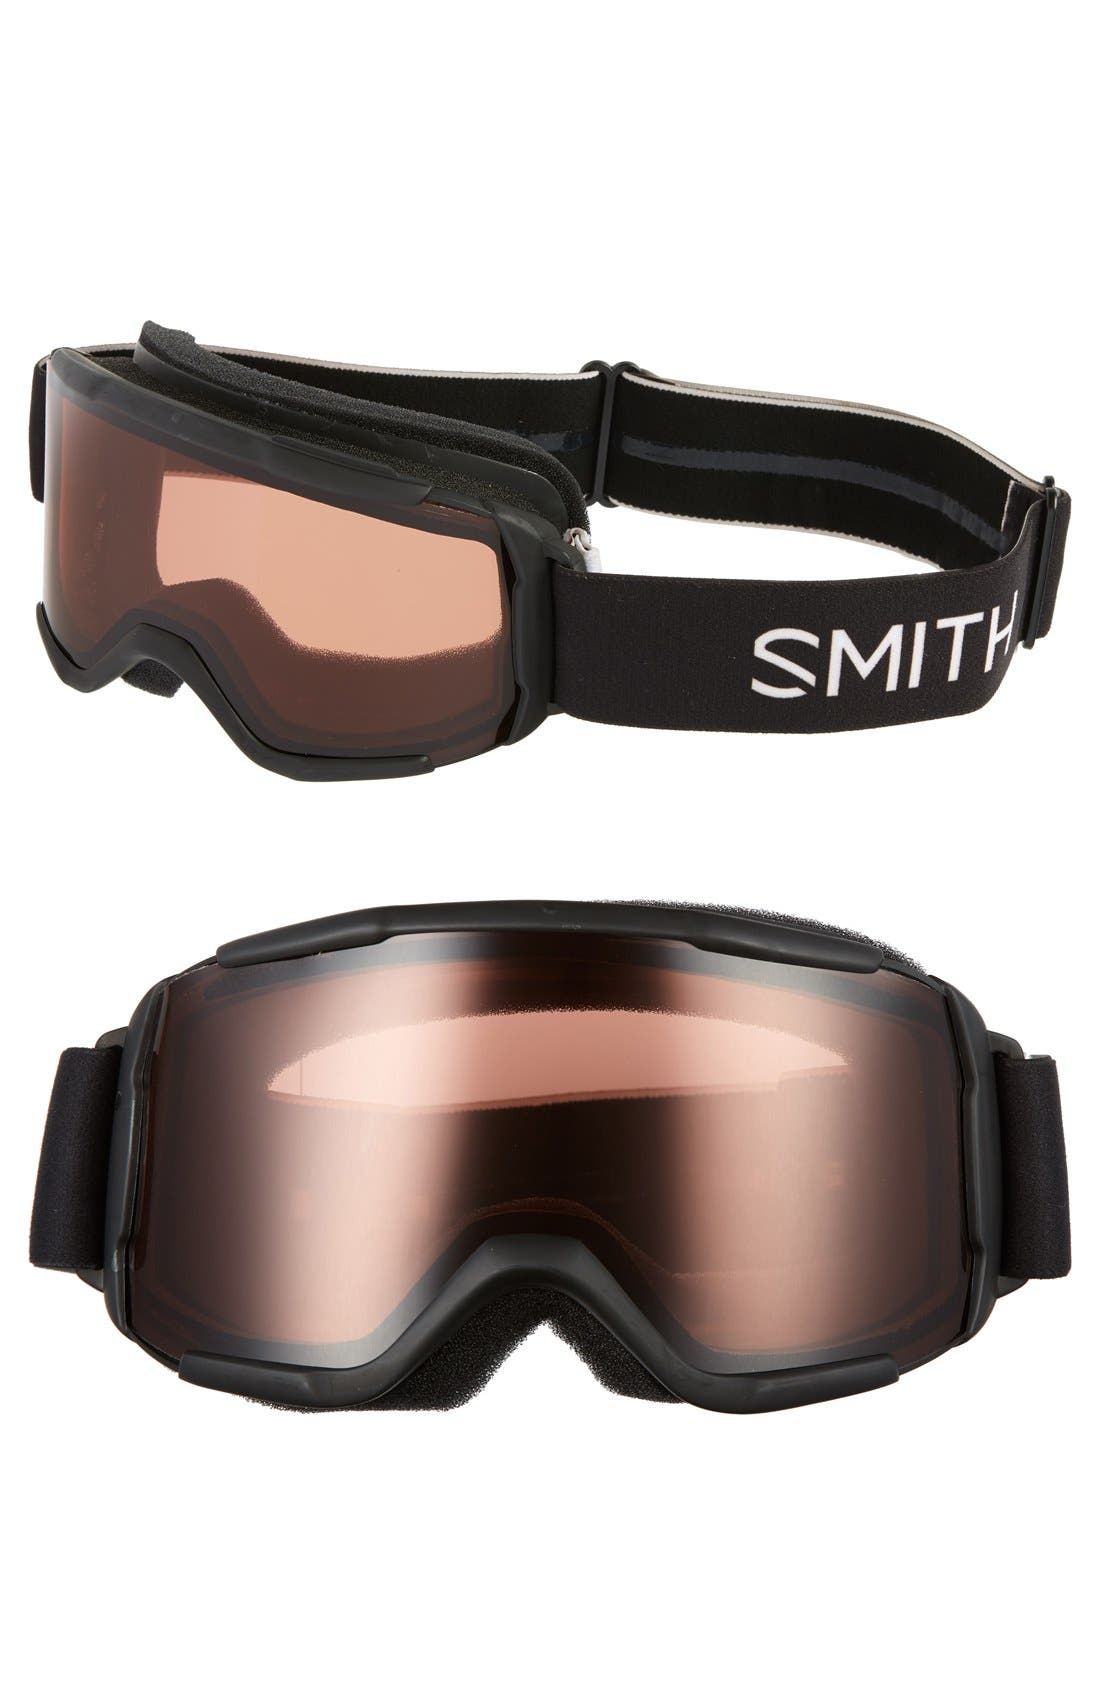 'Daredevil' Snow Goggles,                             Main thumbnail 1, color,                             Black/ Rc36